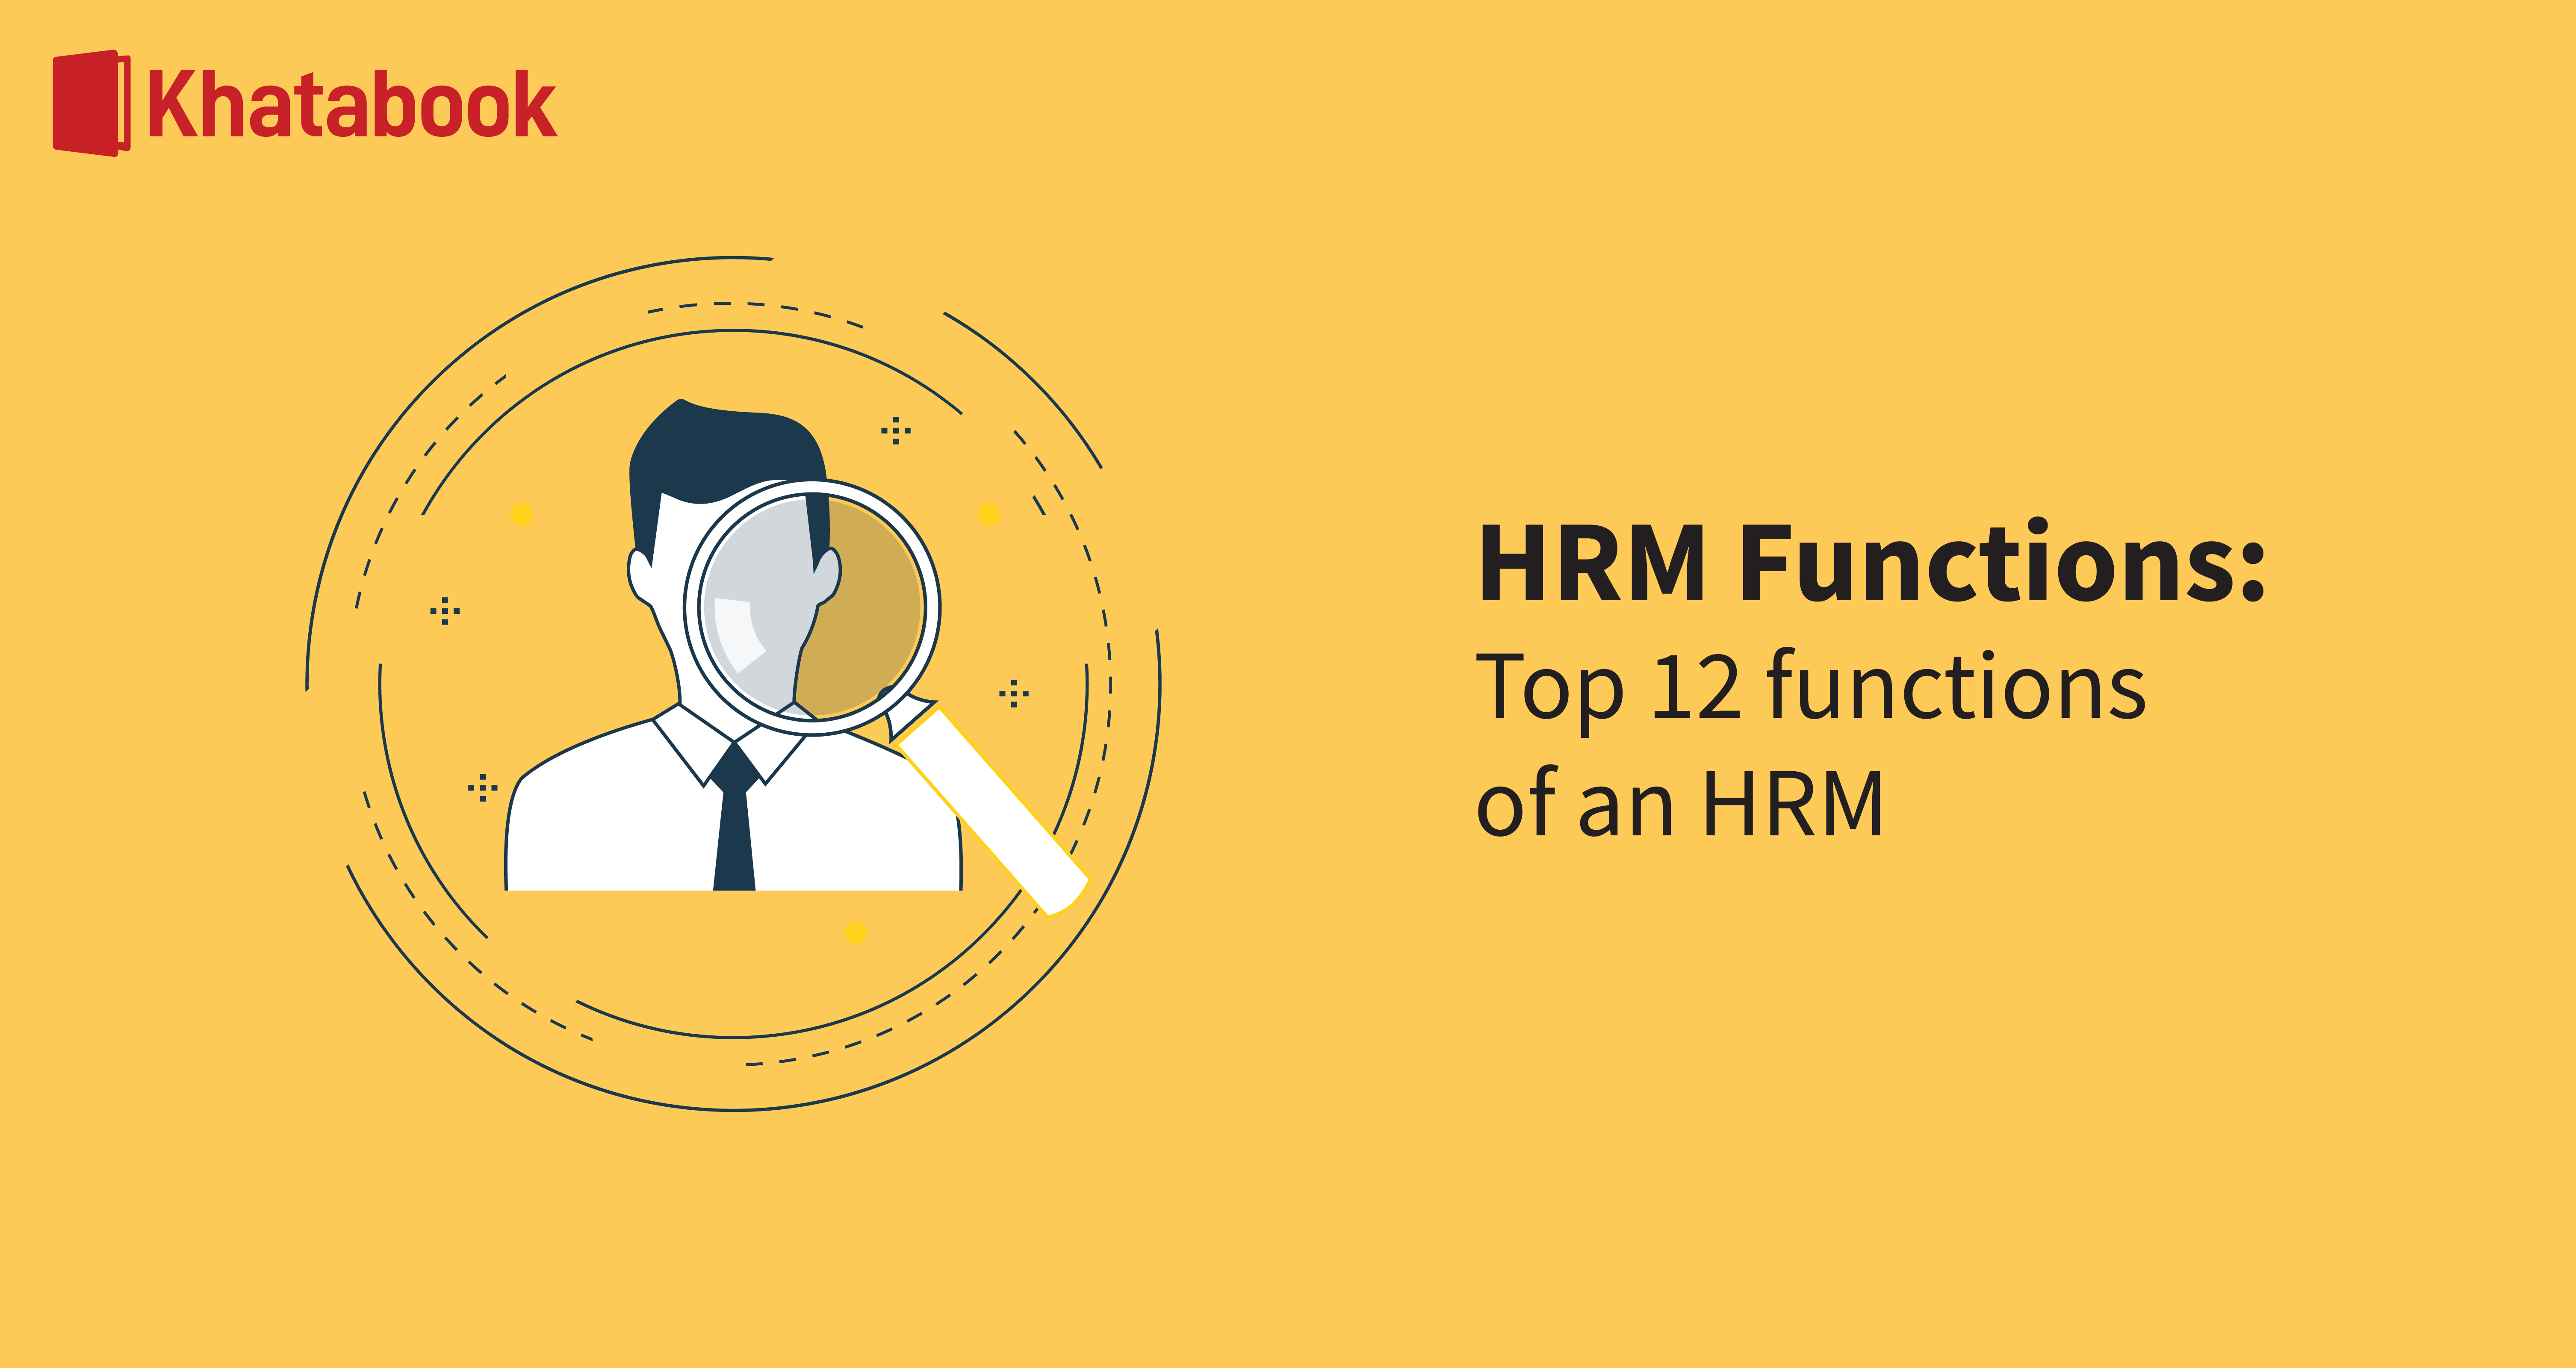 HRM Functions: Top 12 functions of an HRM